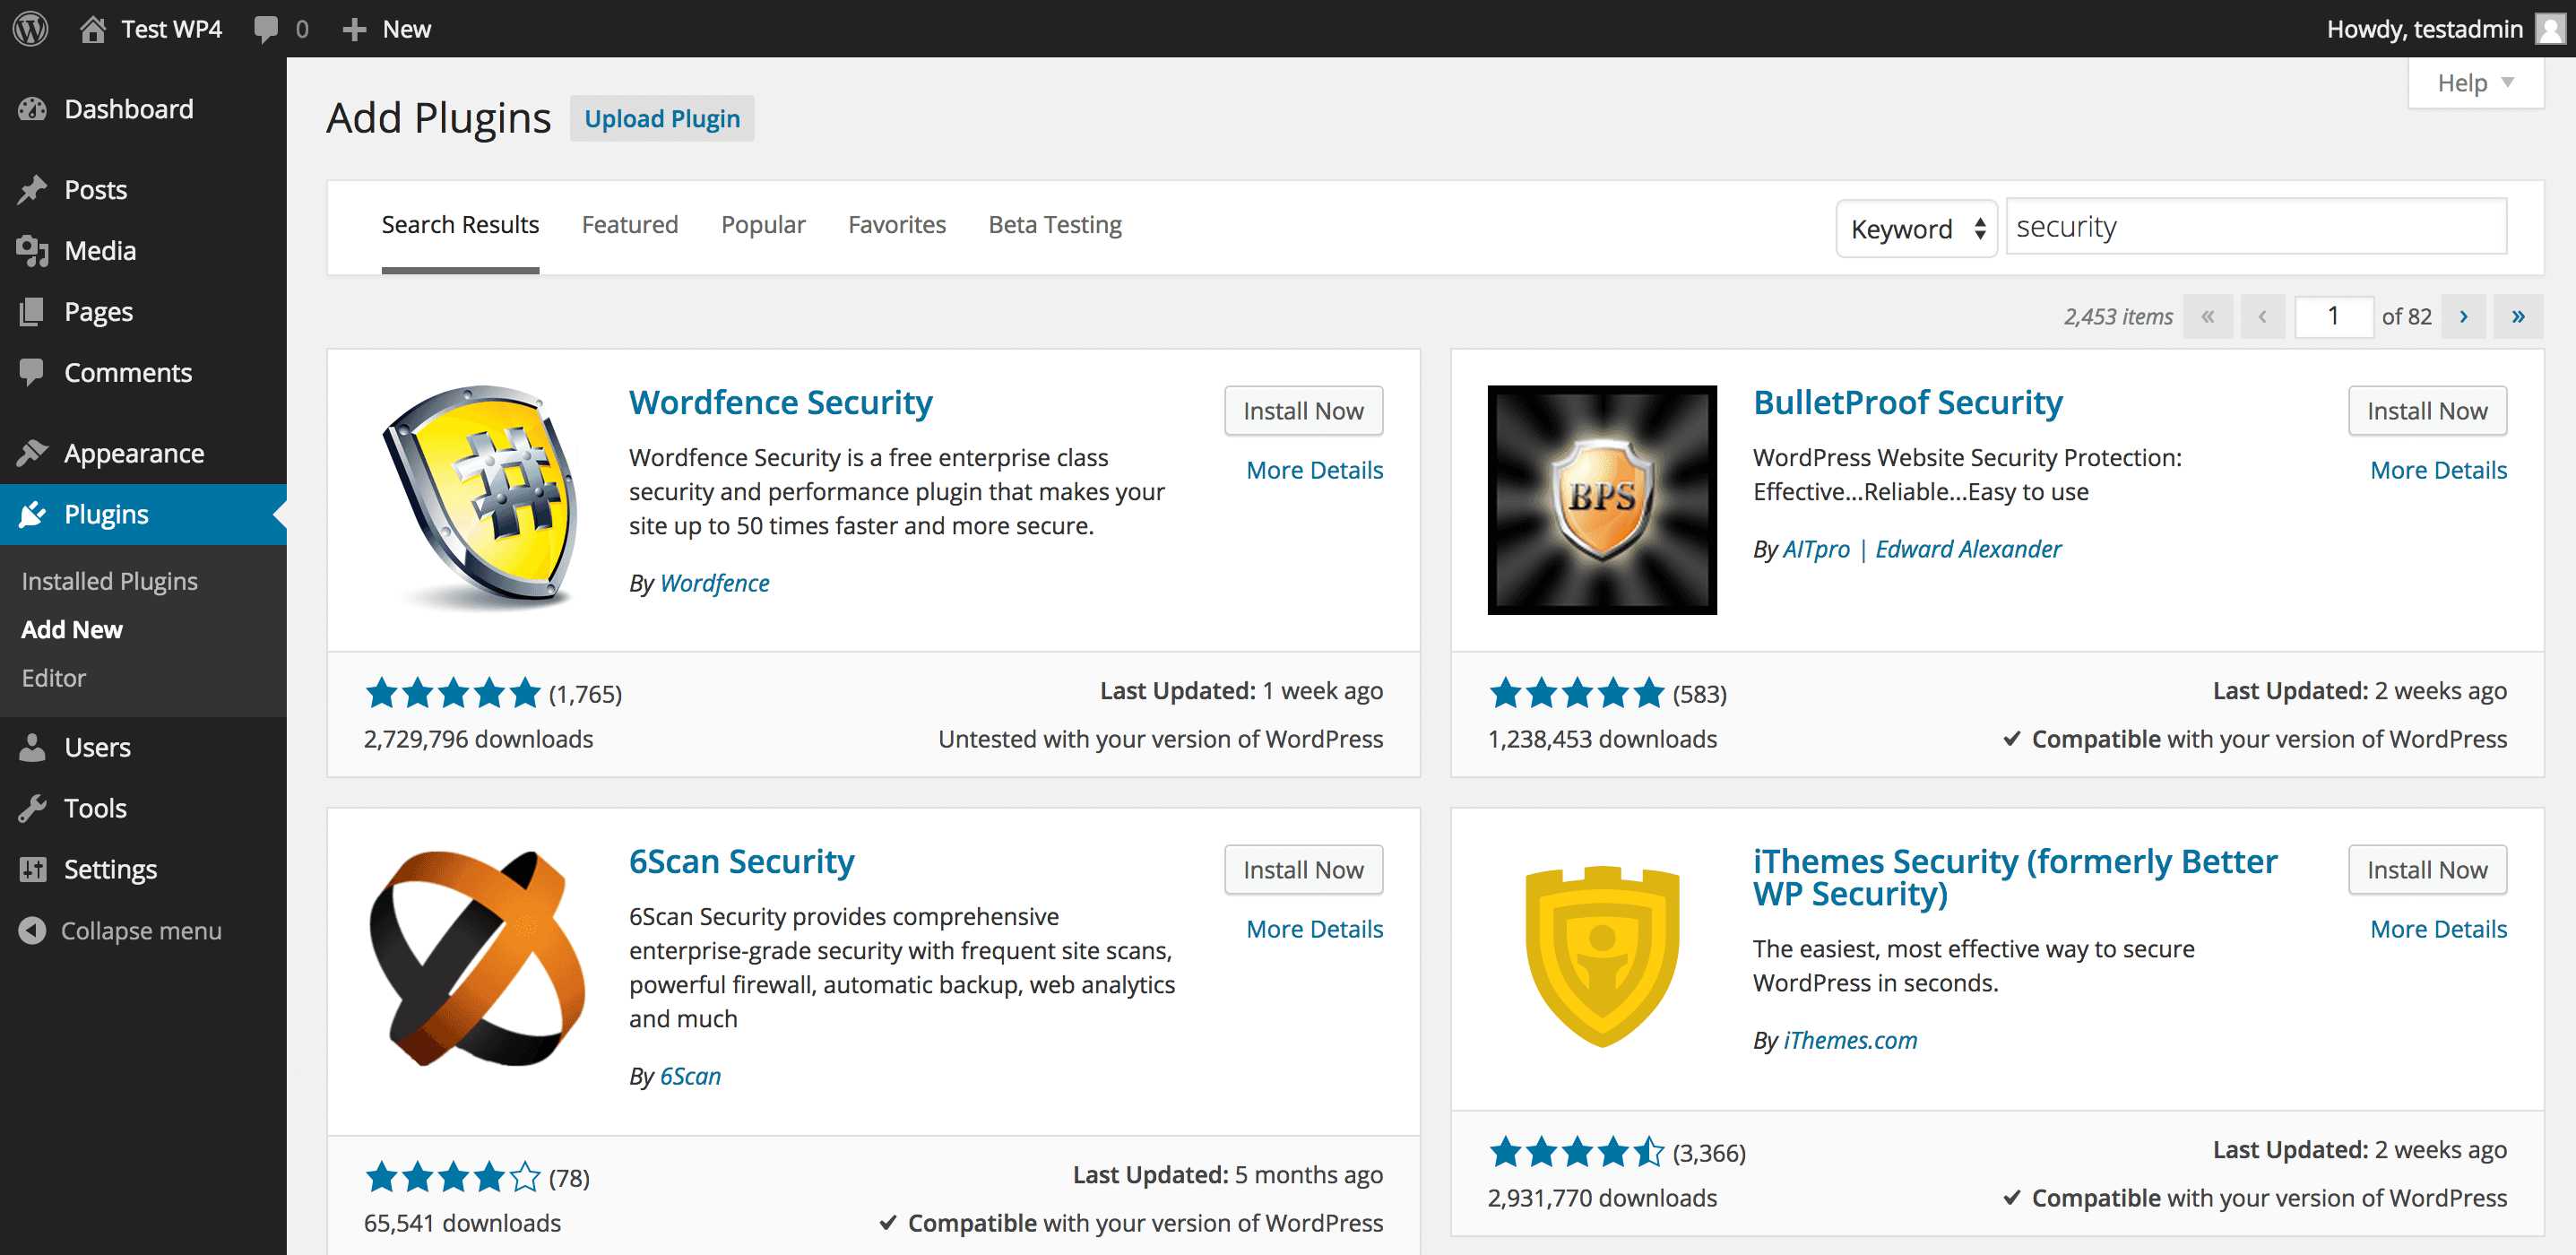 wordpress-4.0